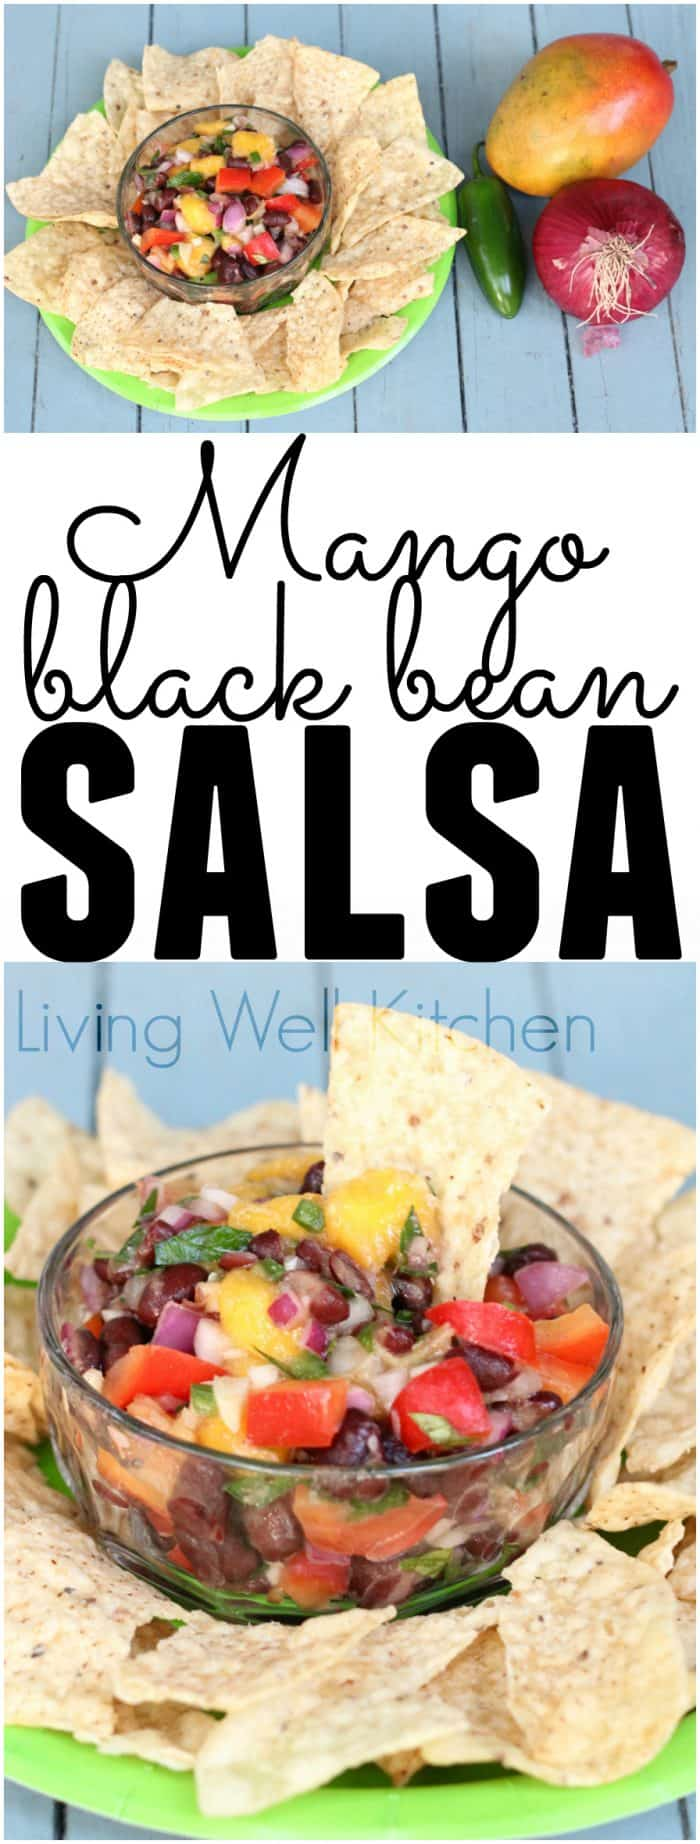 Mango Black Bean Salsa from @memeinge is gluten-free & vegan and makes everything taste tropical. It's great as a dip or over cooked chicken breast or fish!